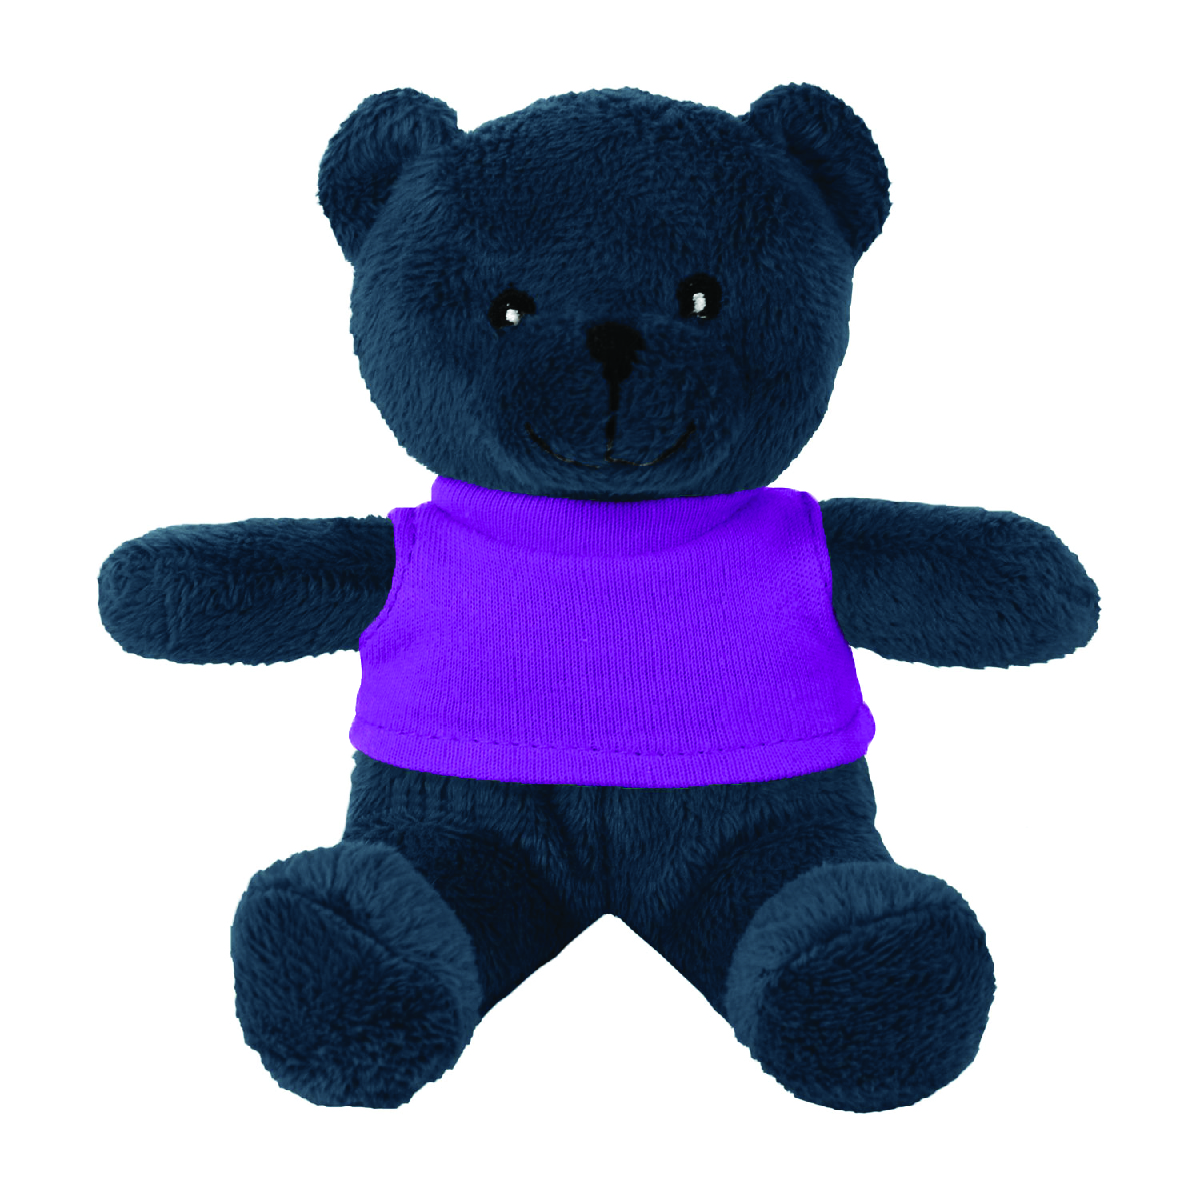 Navy Color Bears